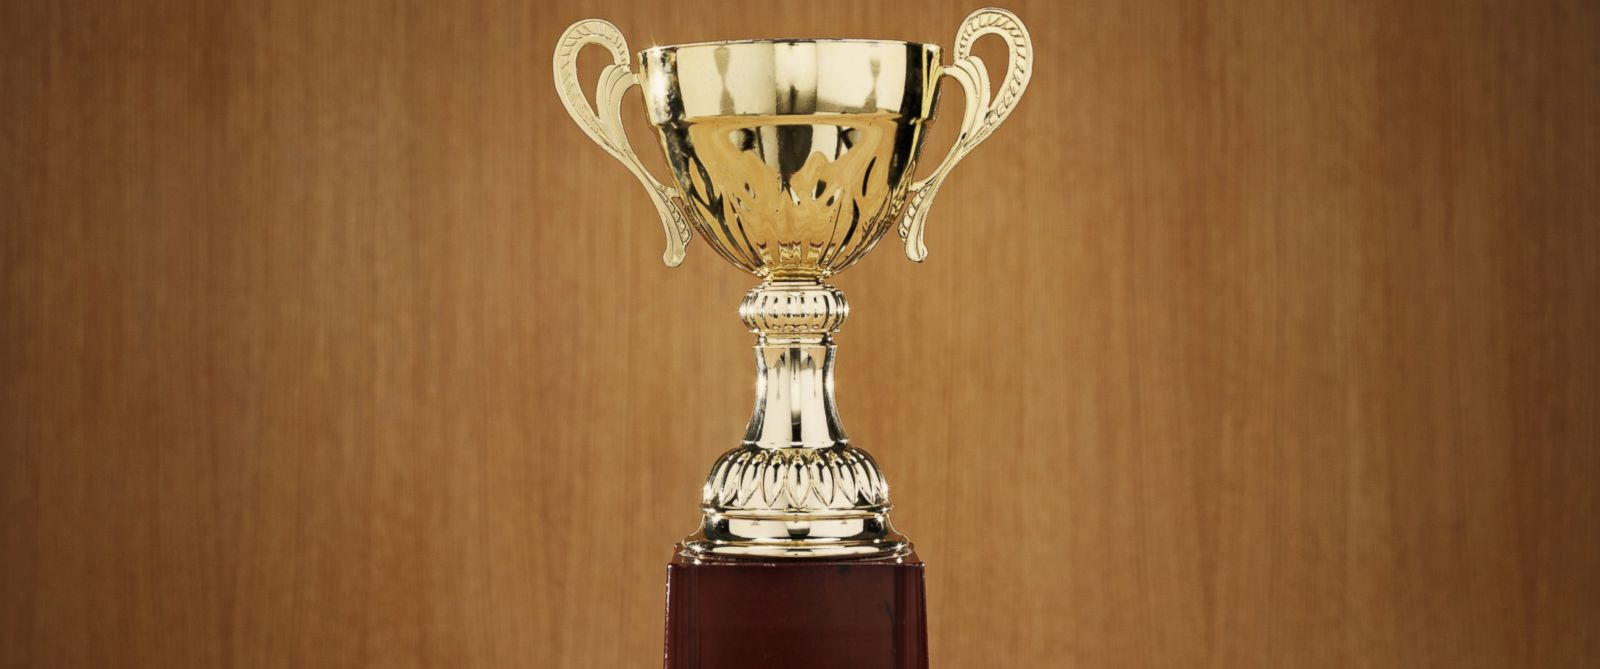 PHOTO: A trophy is pictured in this stock image.